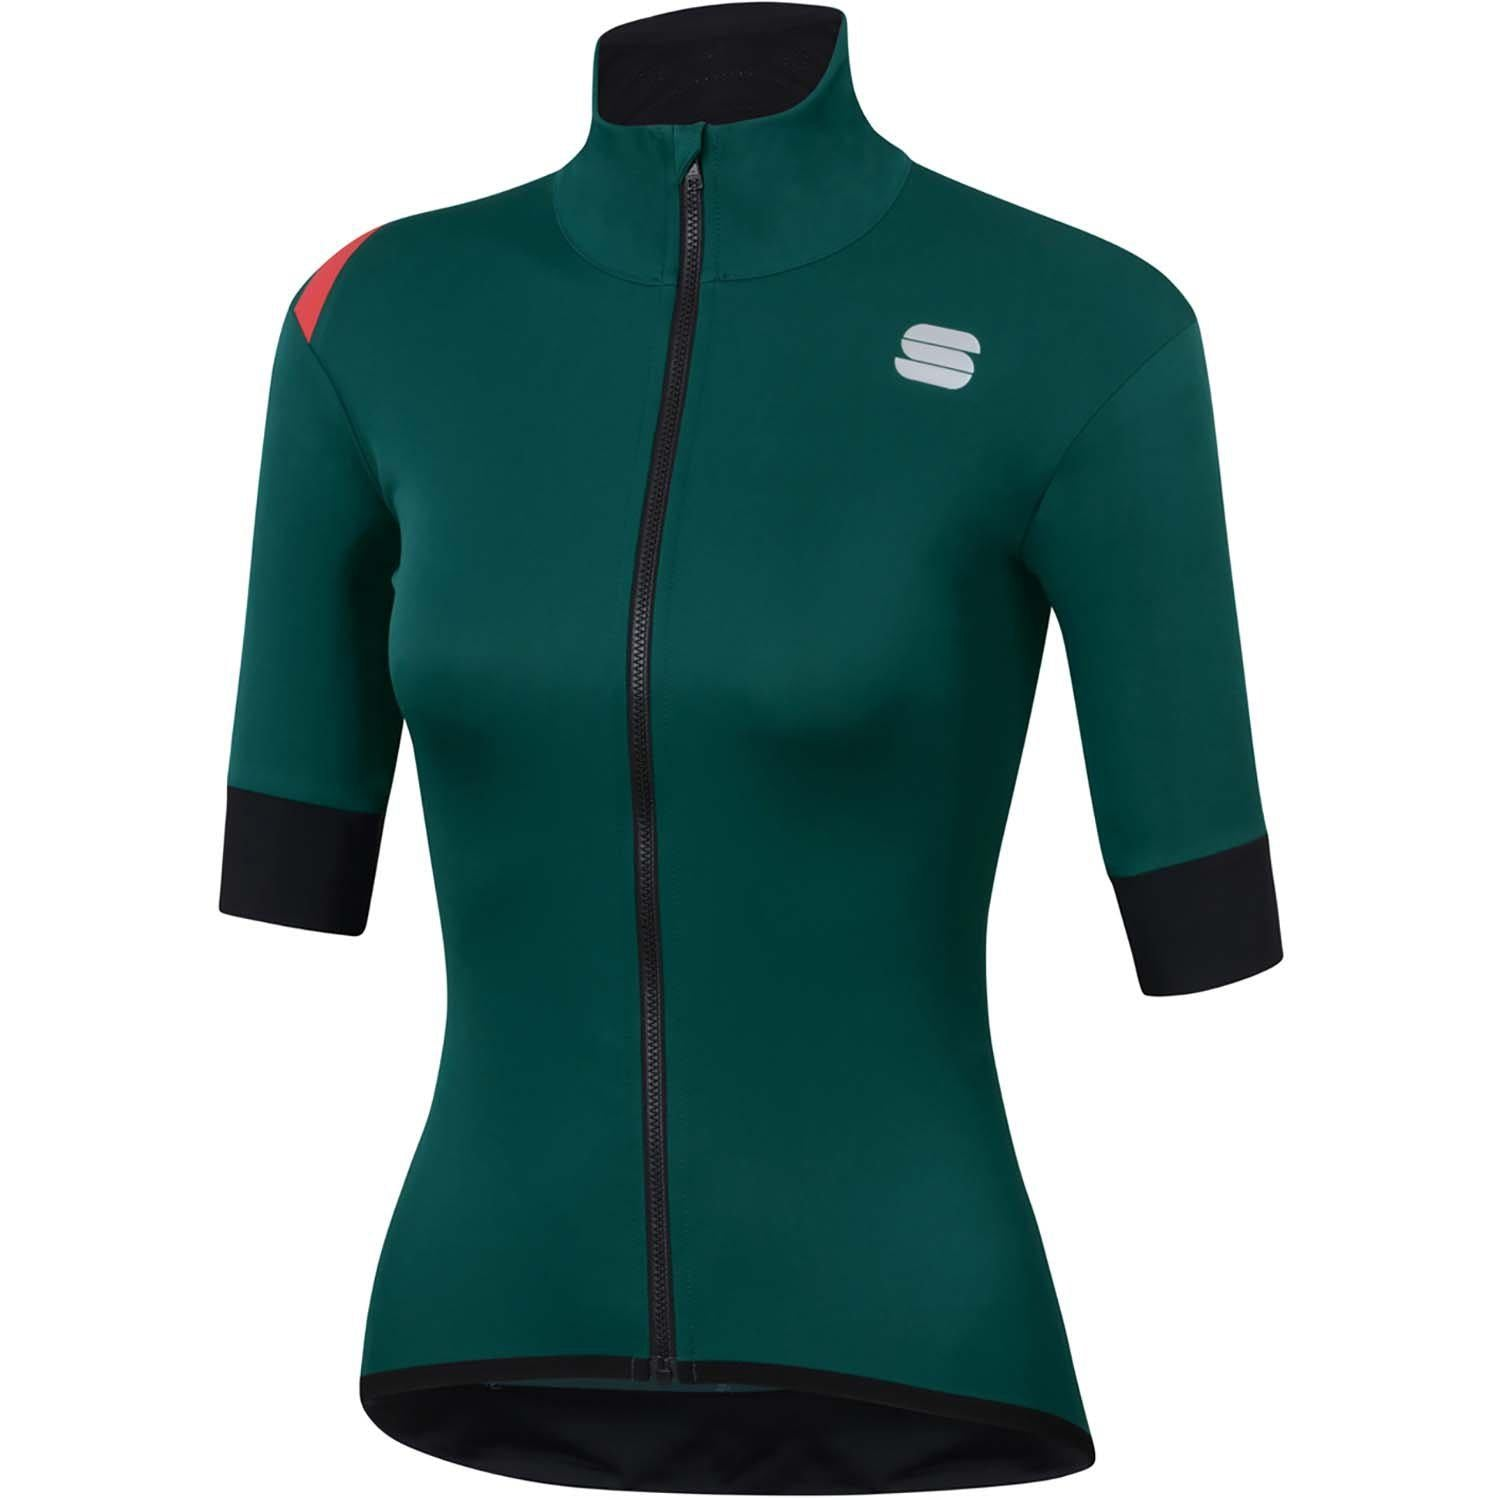 Sportful-Sportful Fiandre Light NoRain Women's Short Sleeve Jacket-Sea Moss-XS-SF200423291-saddleback-elite-performance-cycling